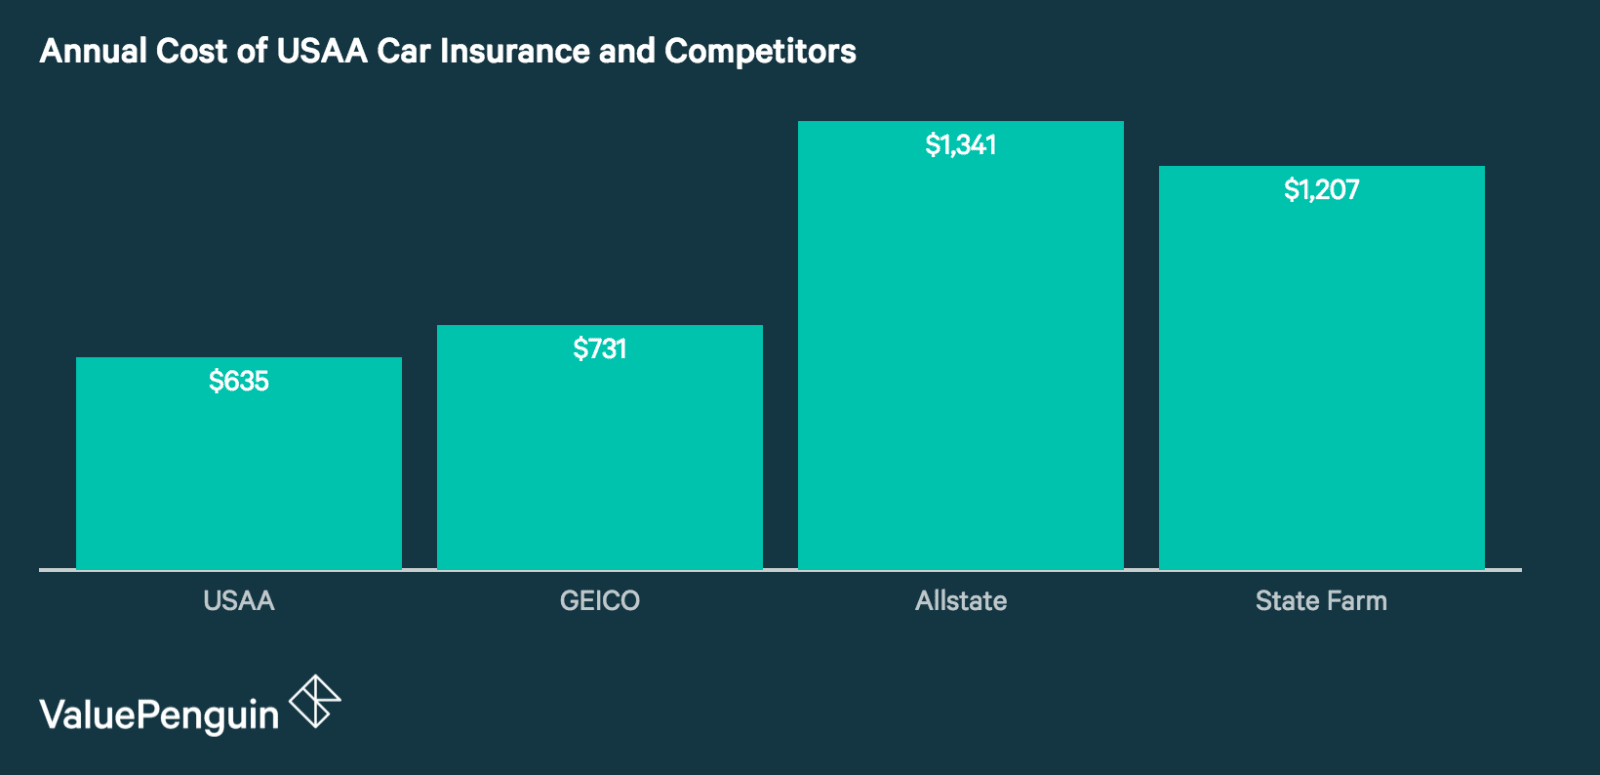 USAA is generally cheaper than other car insurers like State farm and Allstate, though GEICO has comparable pricing